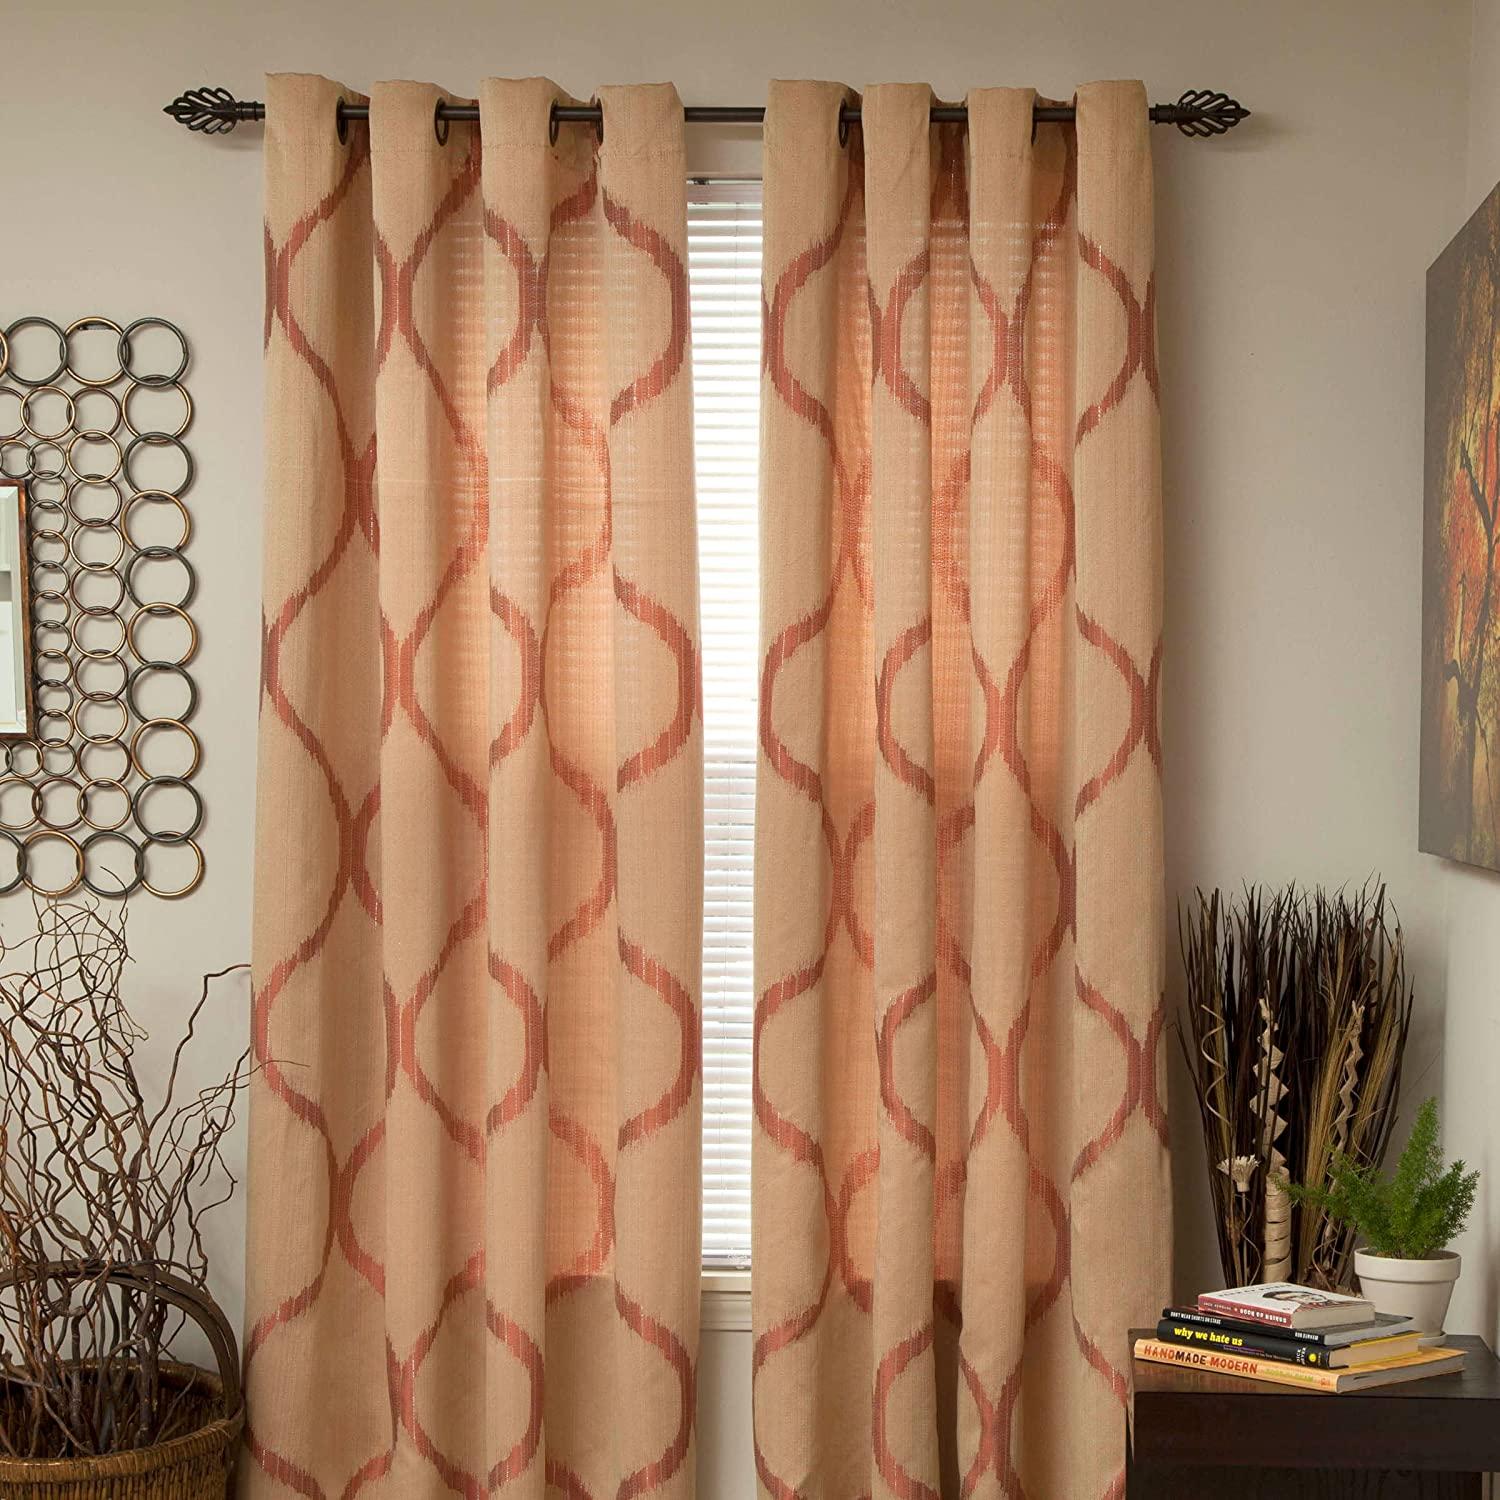 Lavish Home Metallic Grommet Curtain Panels, 84-Inch, Apricot